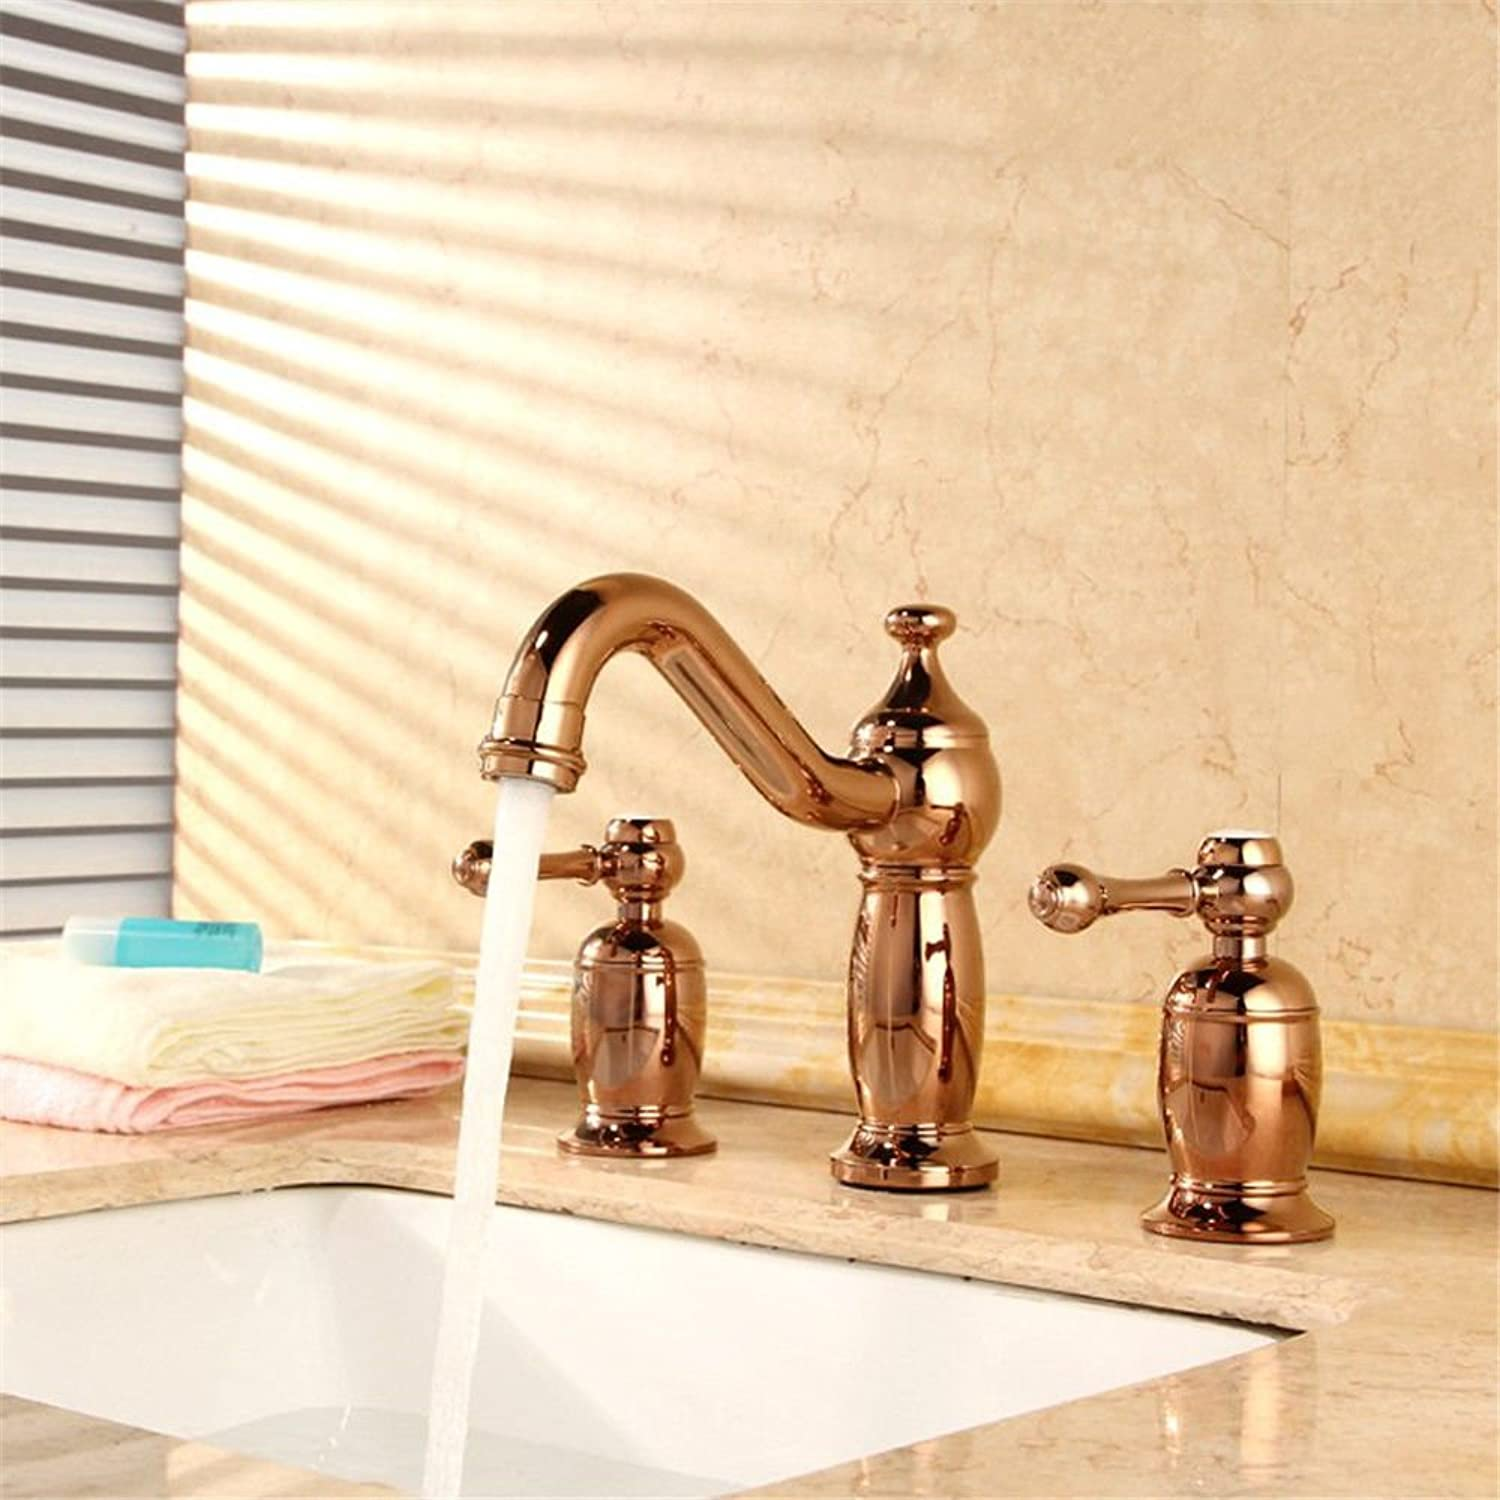 SADASD European High-End Copper Bathroom Basin Faucet Antique Single Unit Lift Open Wash Basin Sink Taps Single Hole Single Handle Ceramic Valve Hot And Cold Water Mixer Tap With G1 2 Hose